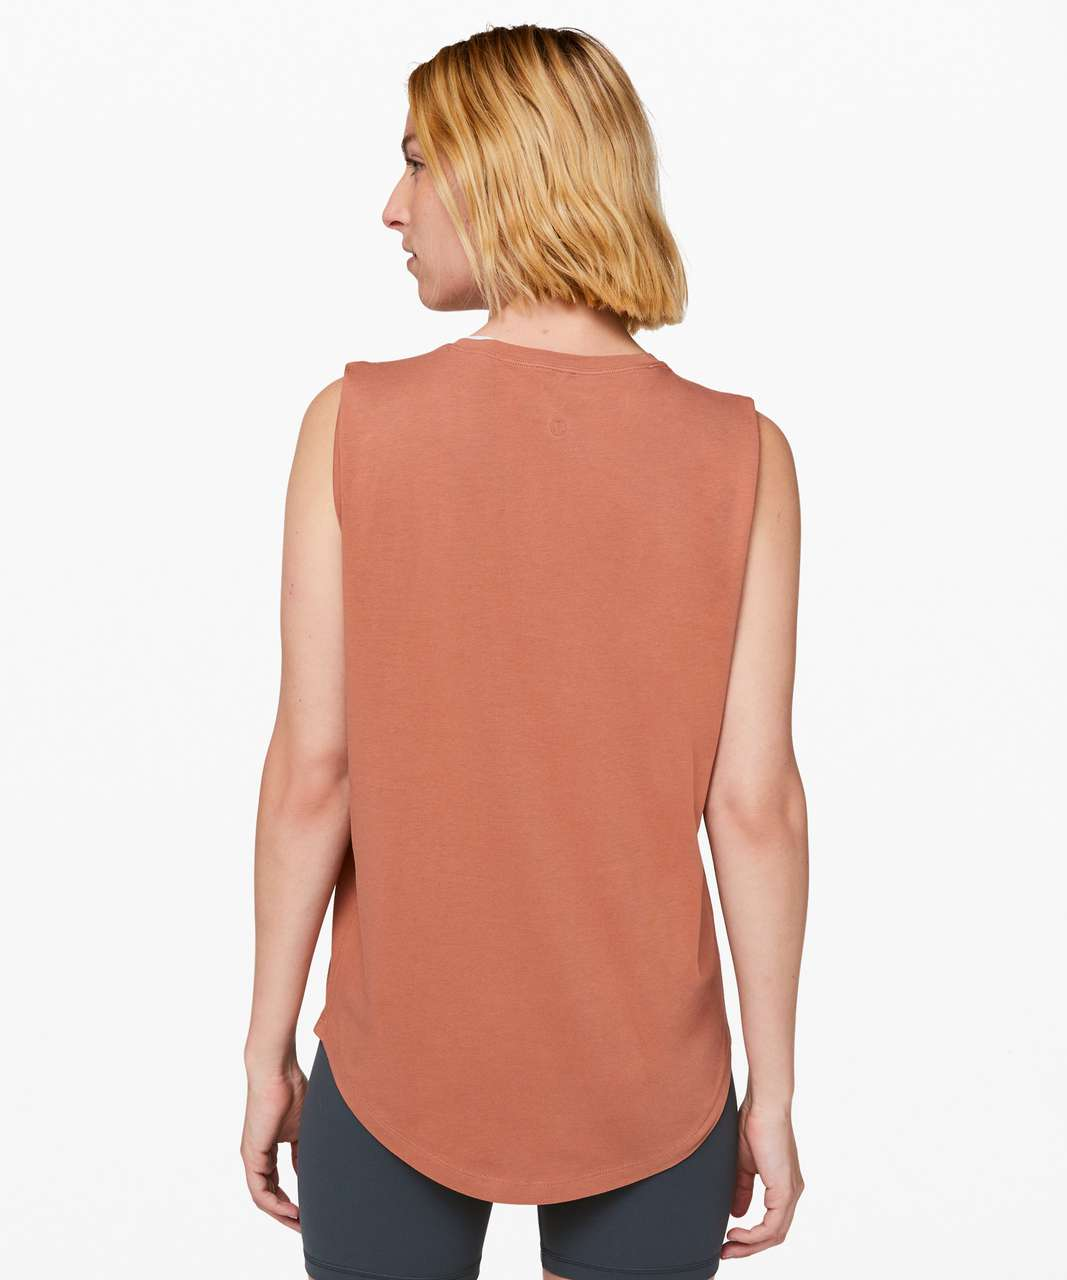 Lululemon Brunswick Muscle Tank - Canyon Rock